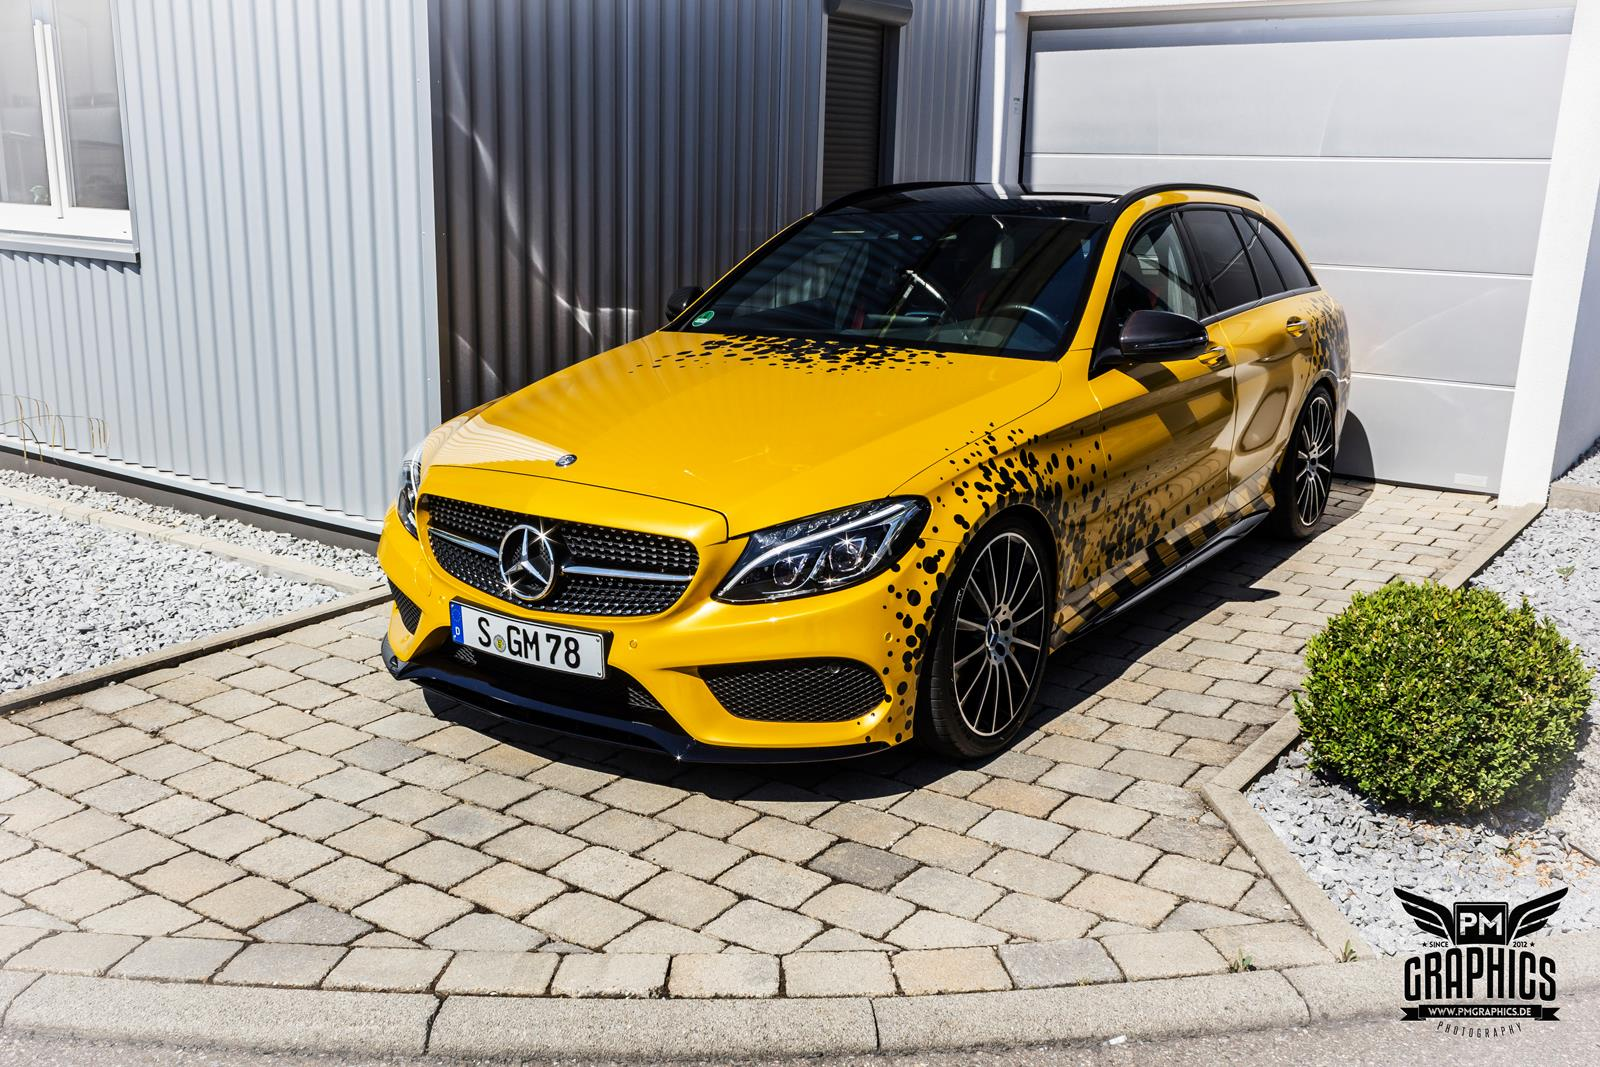 Mercedes C Amg Yellow Taxi Vs C In Silky Blue Wrap Battle